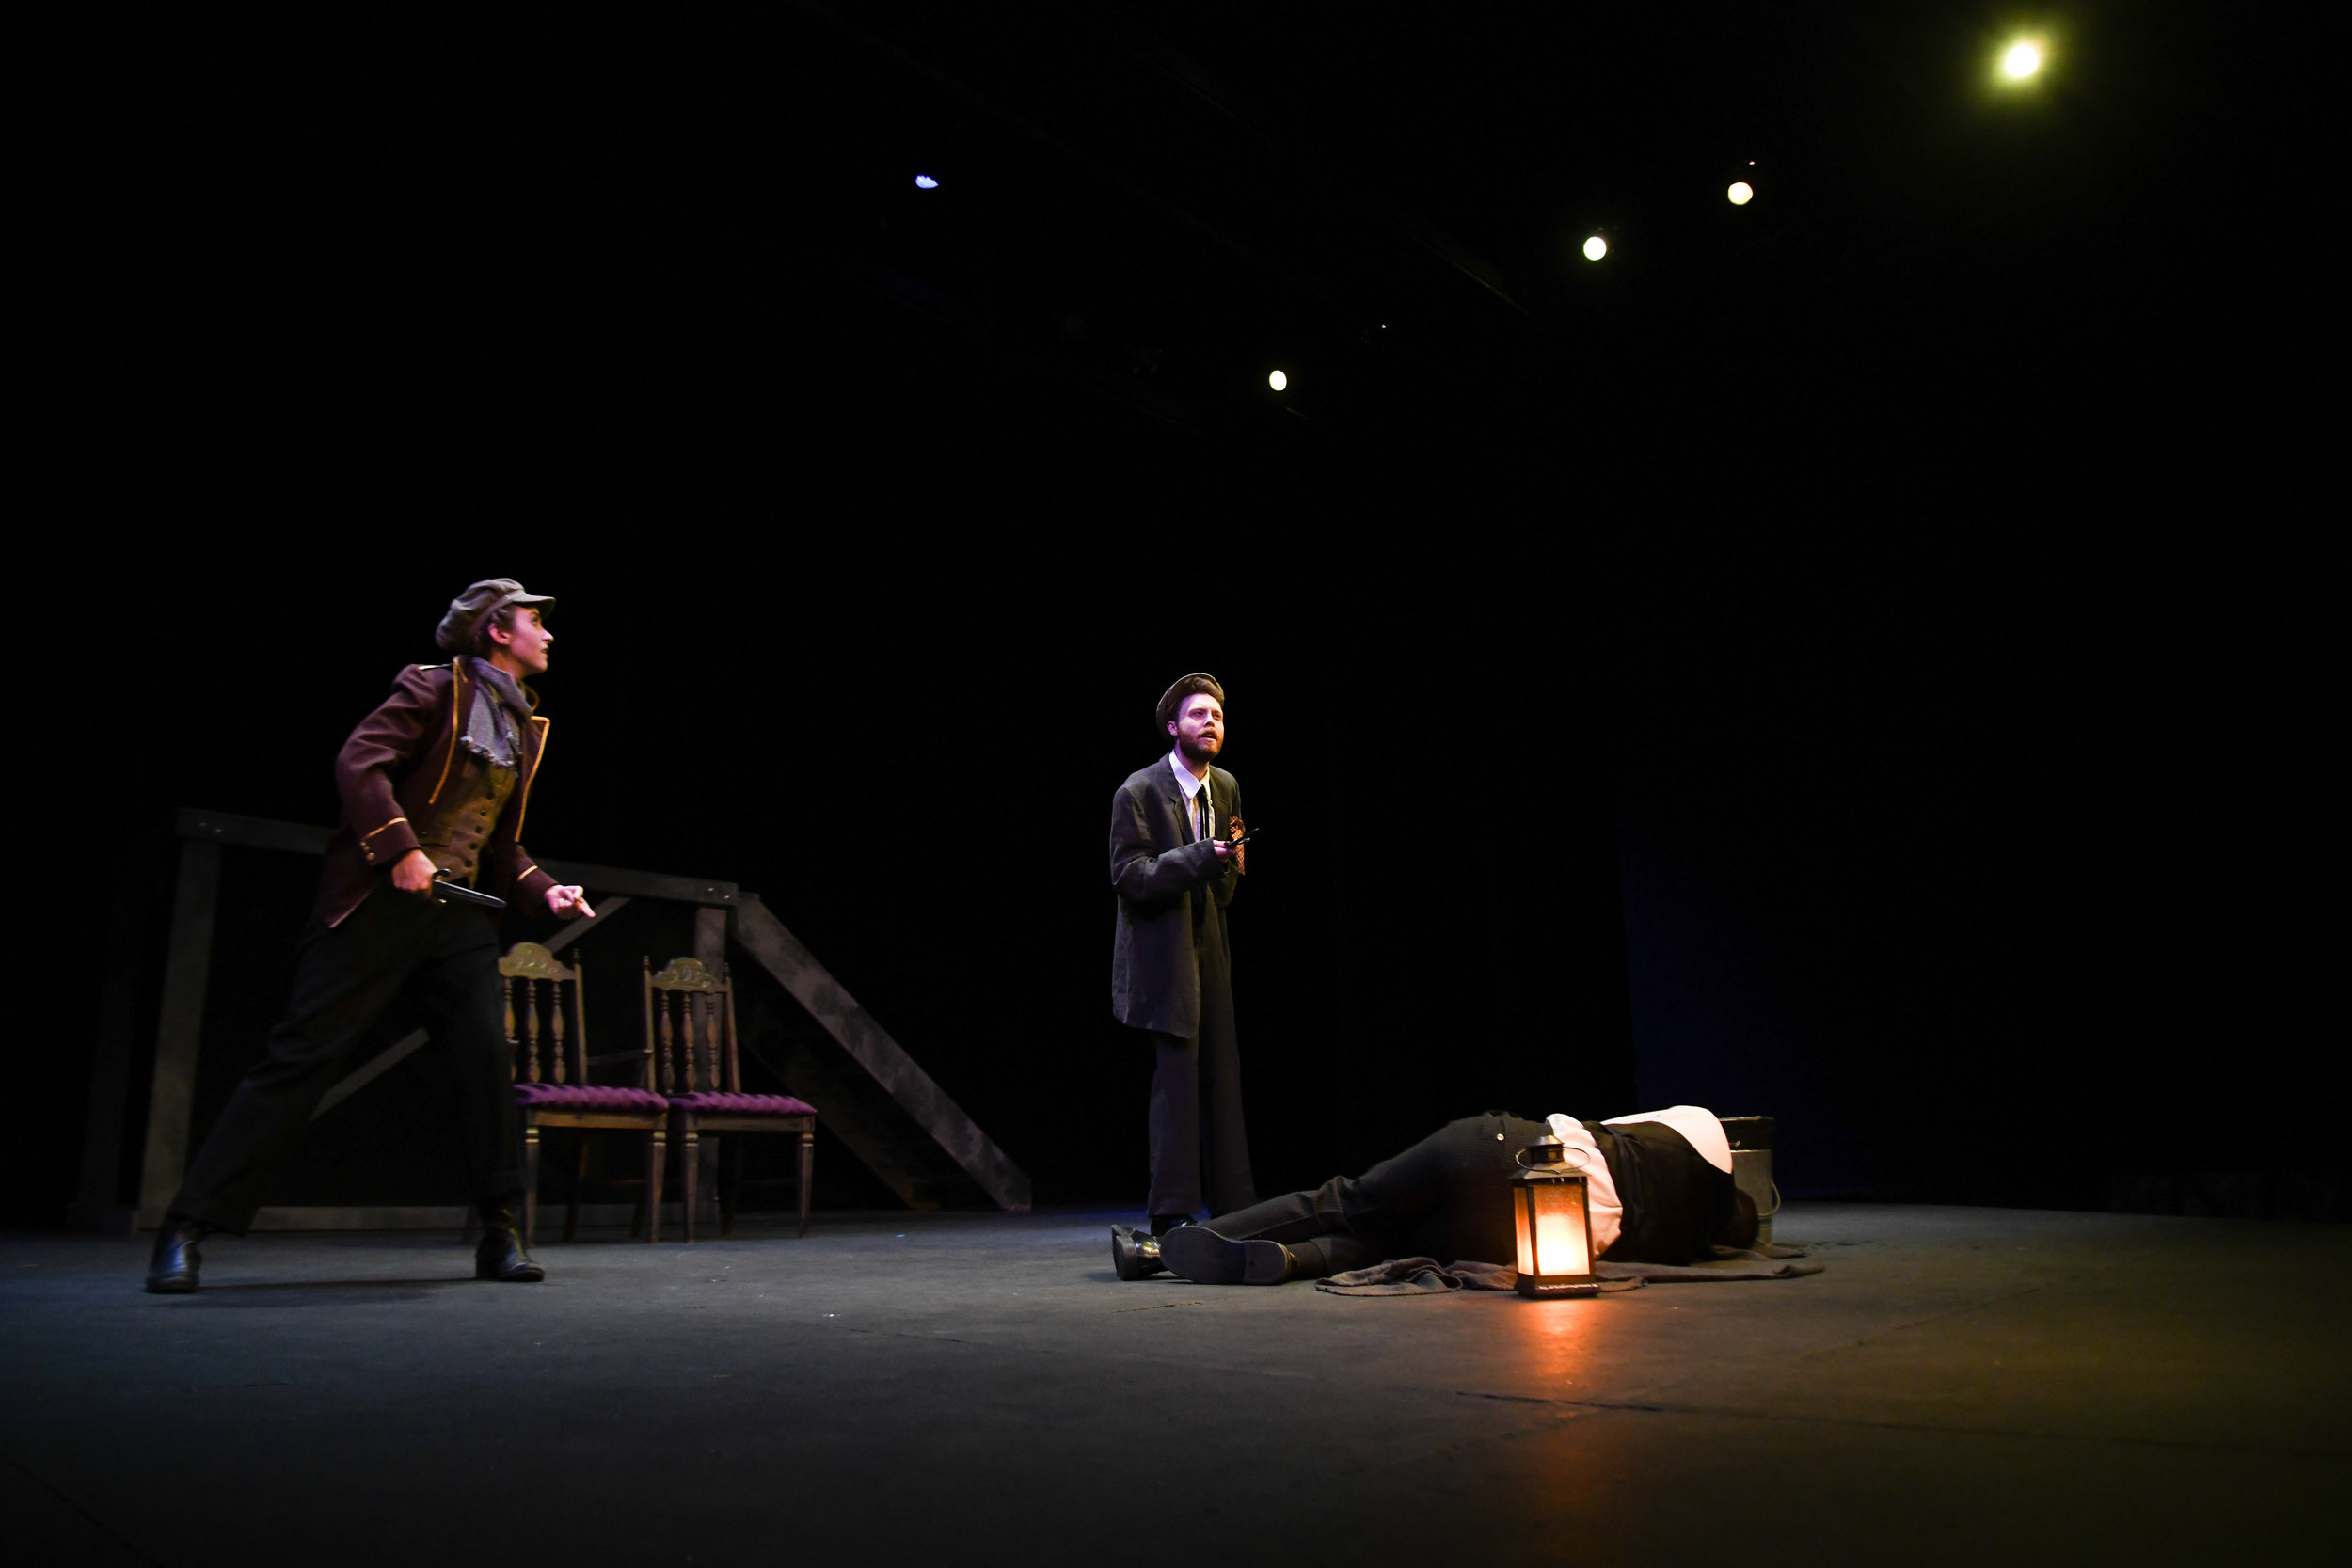 Natasha Nightingale, Will Ormsby Cary, Daniel Holme. Photo by Liza Gillette.